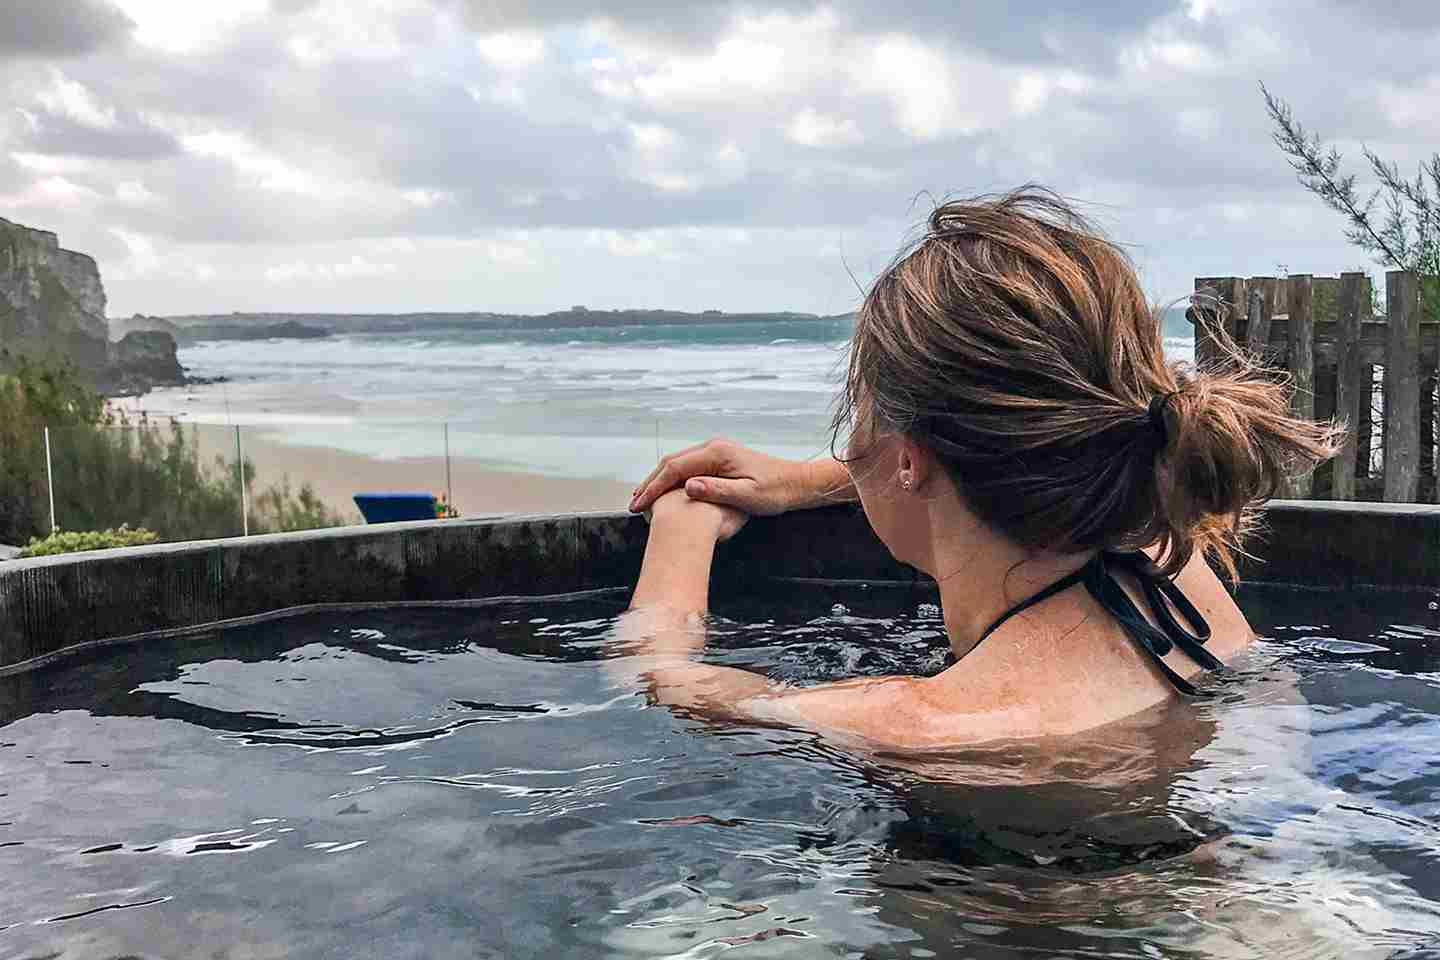 Woman-in-the-hot-tub-overlooking-the-beach.jpg